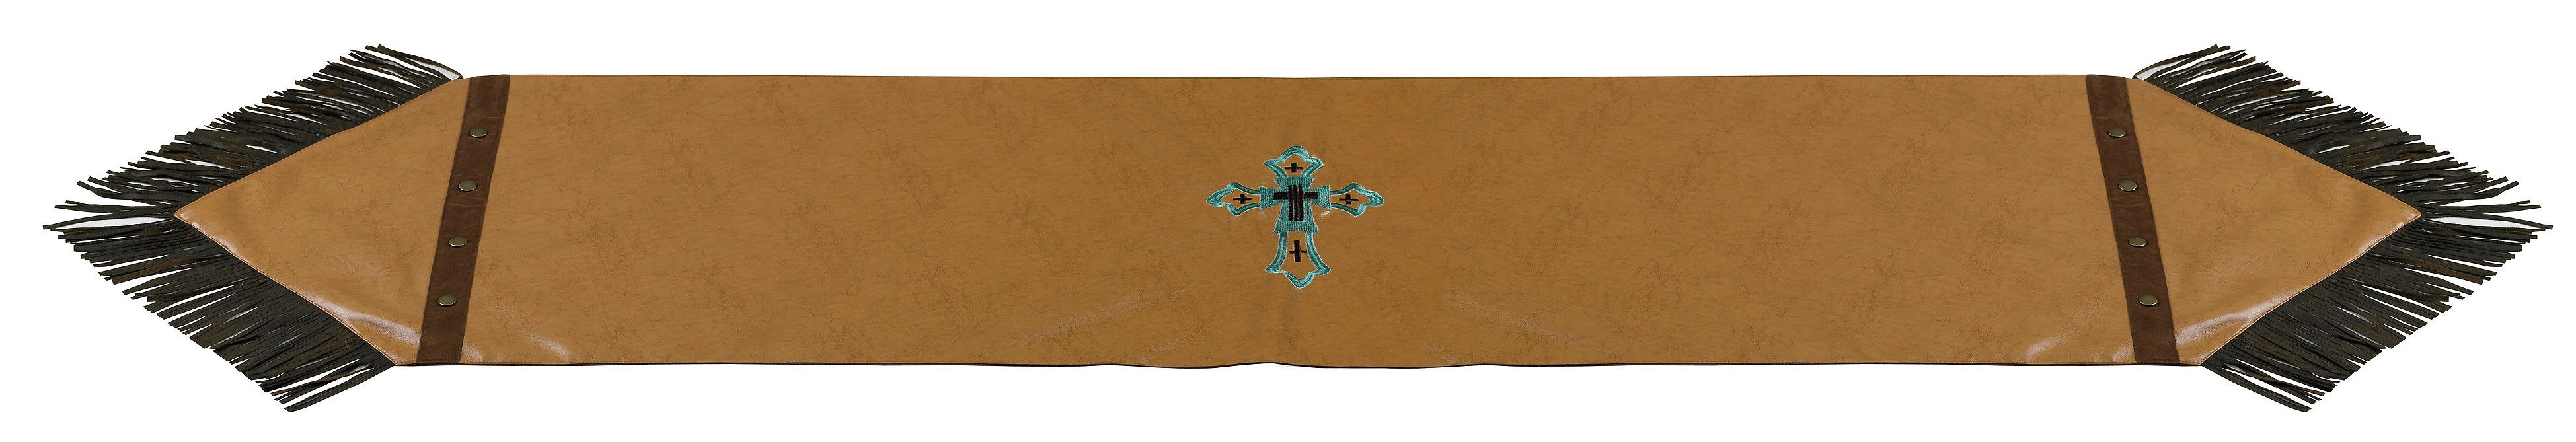 Zoomed Image HiEnd Accents Tan Faux Leather Table Runner, Tan, Hi Res